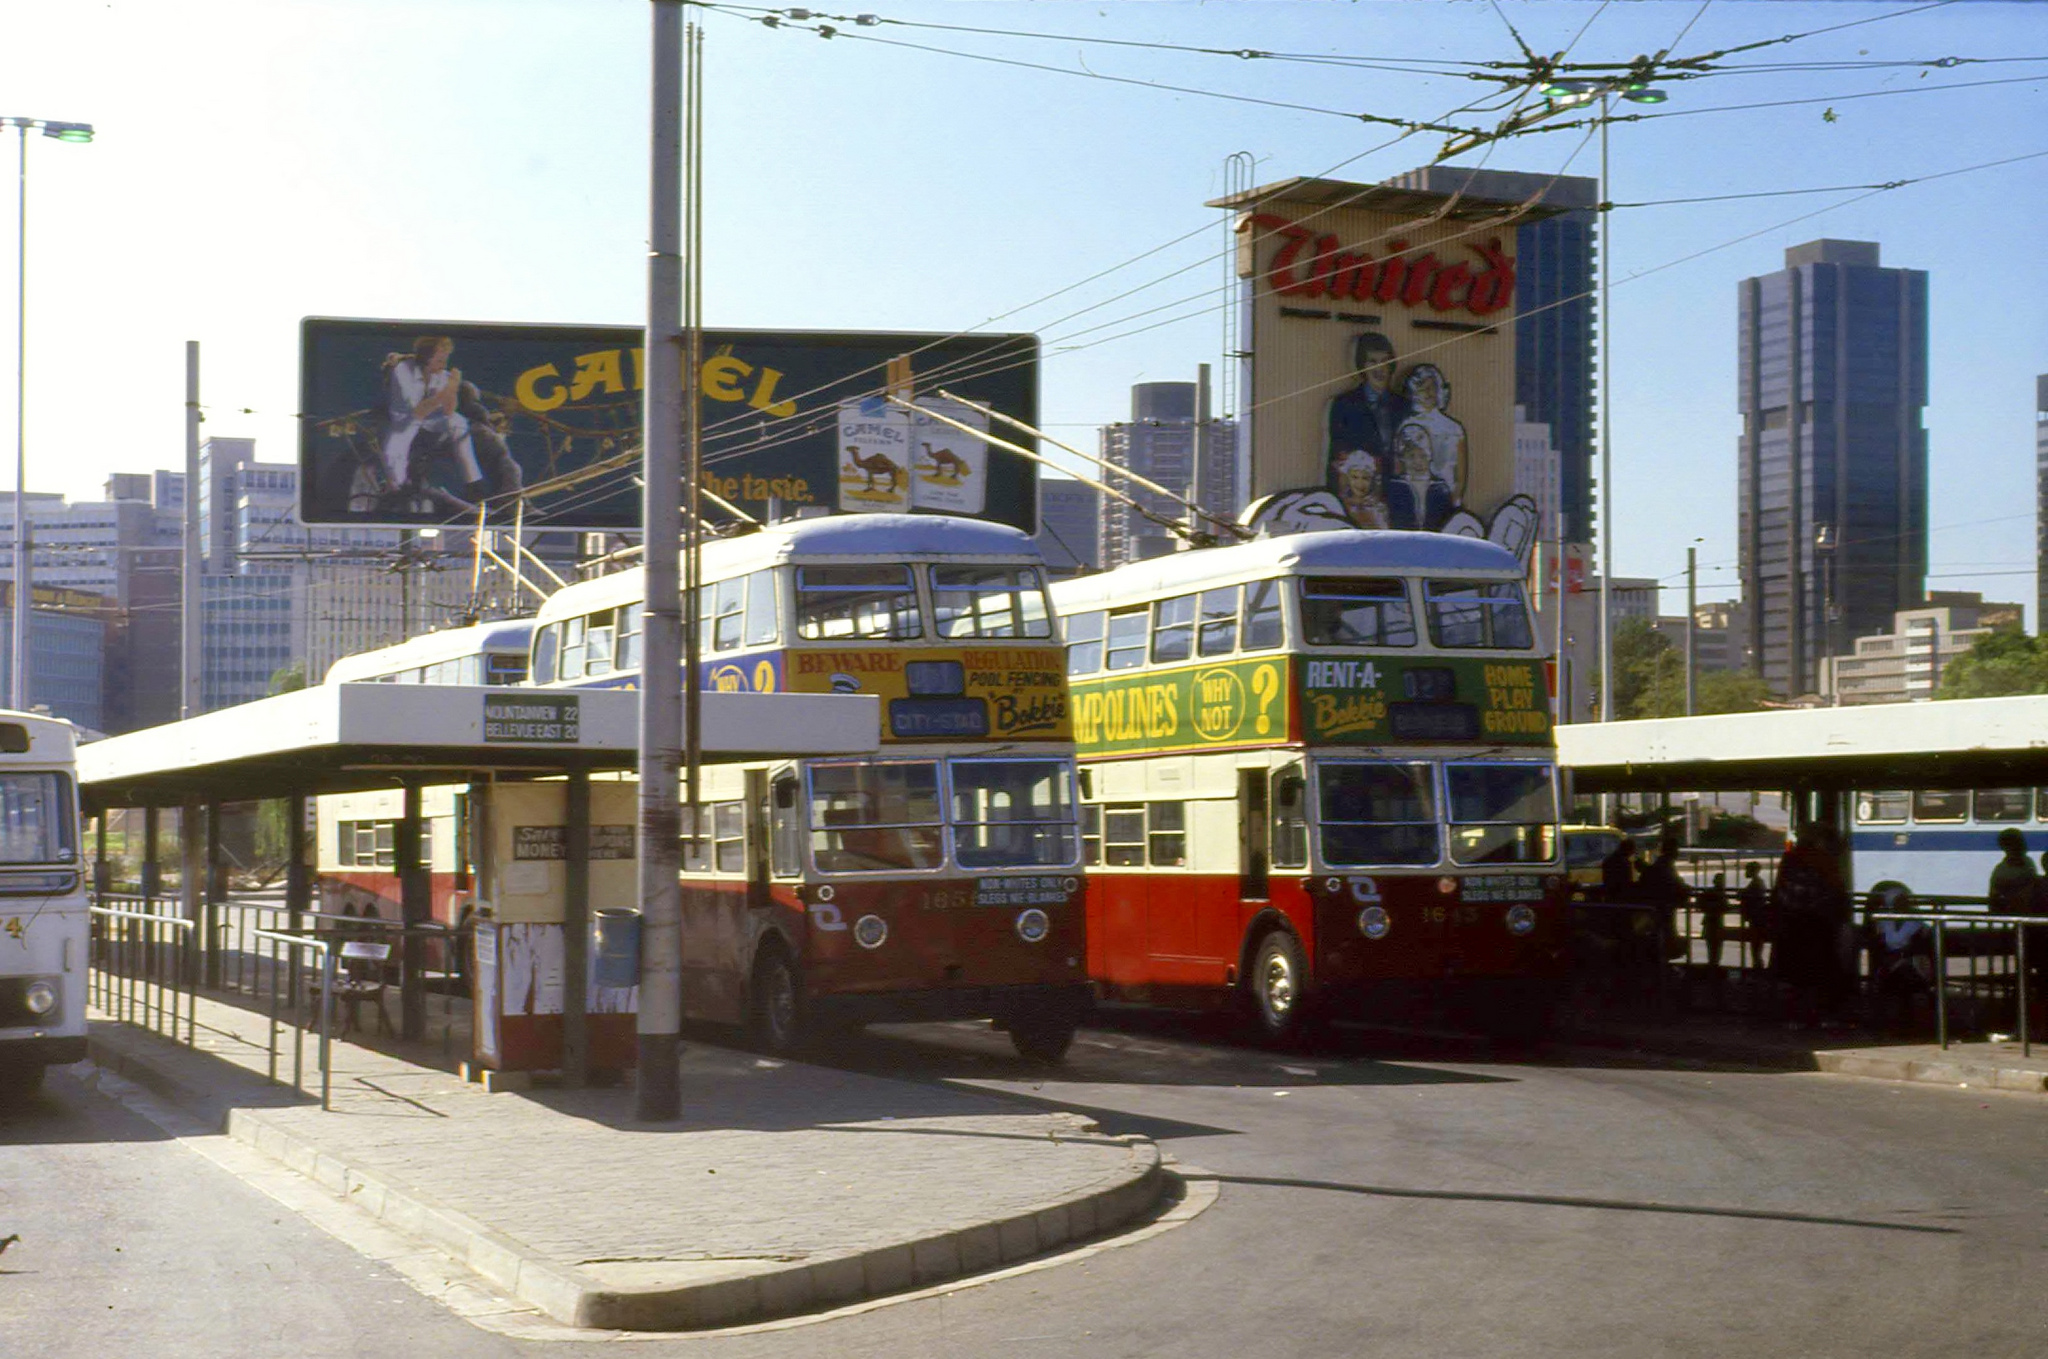 Johannesburg Trolleybuses, 1984. Photo by Martyn Hearson on Flickr